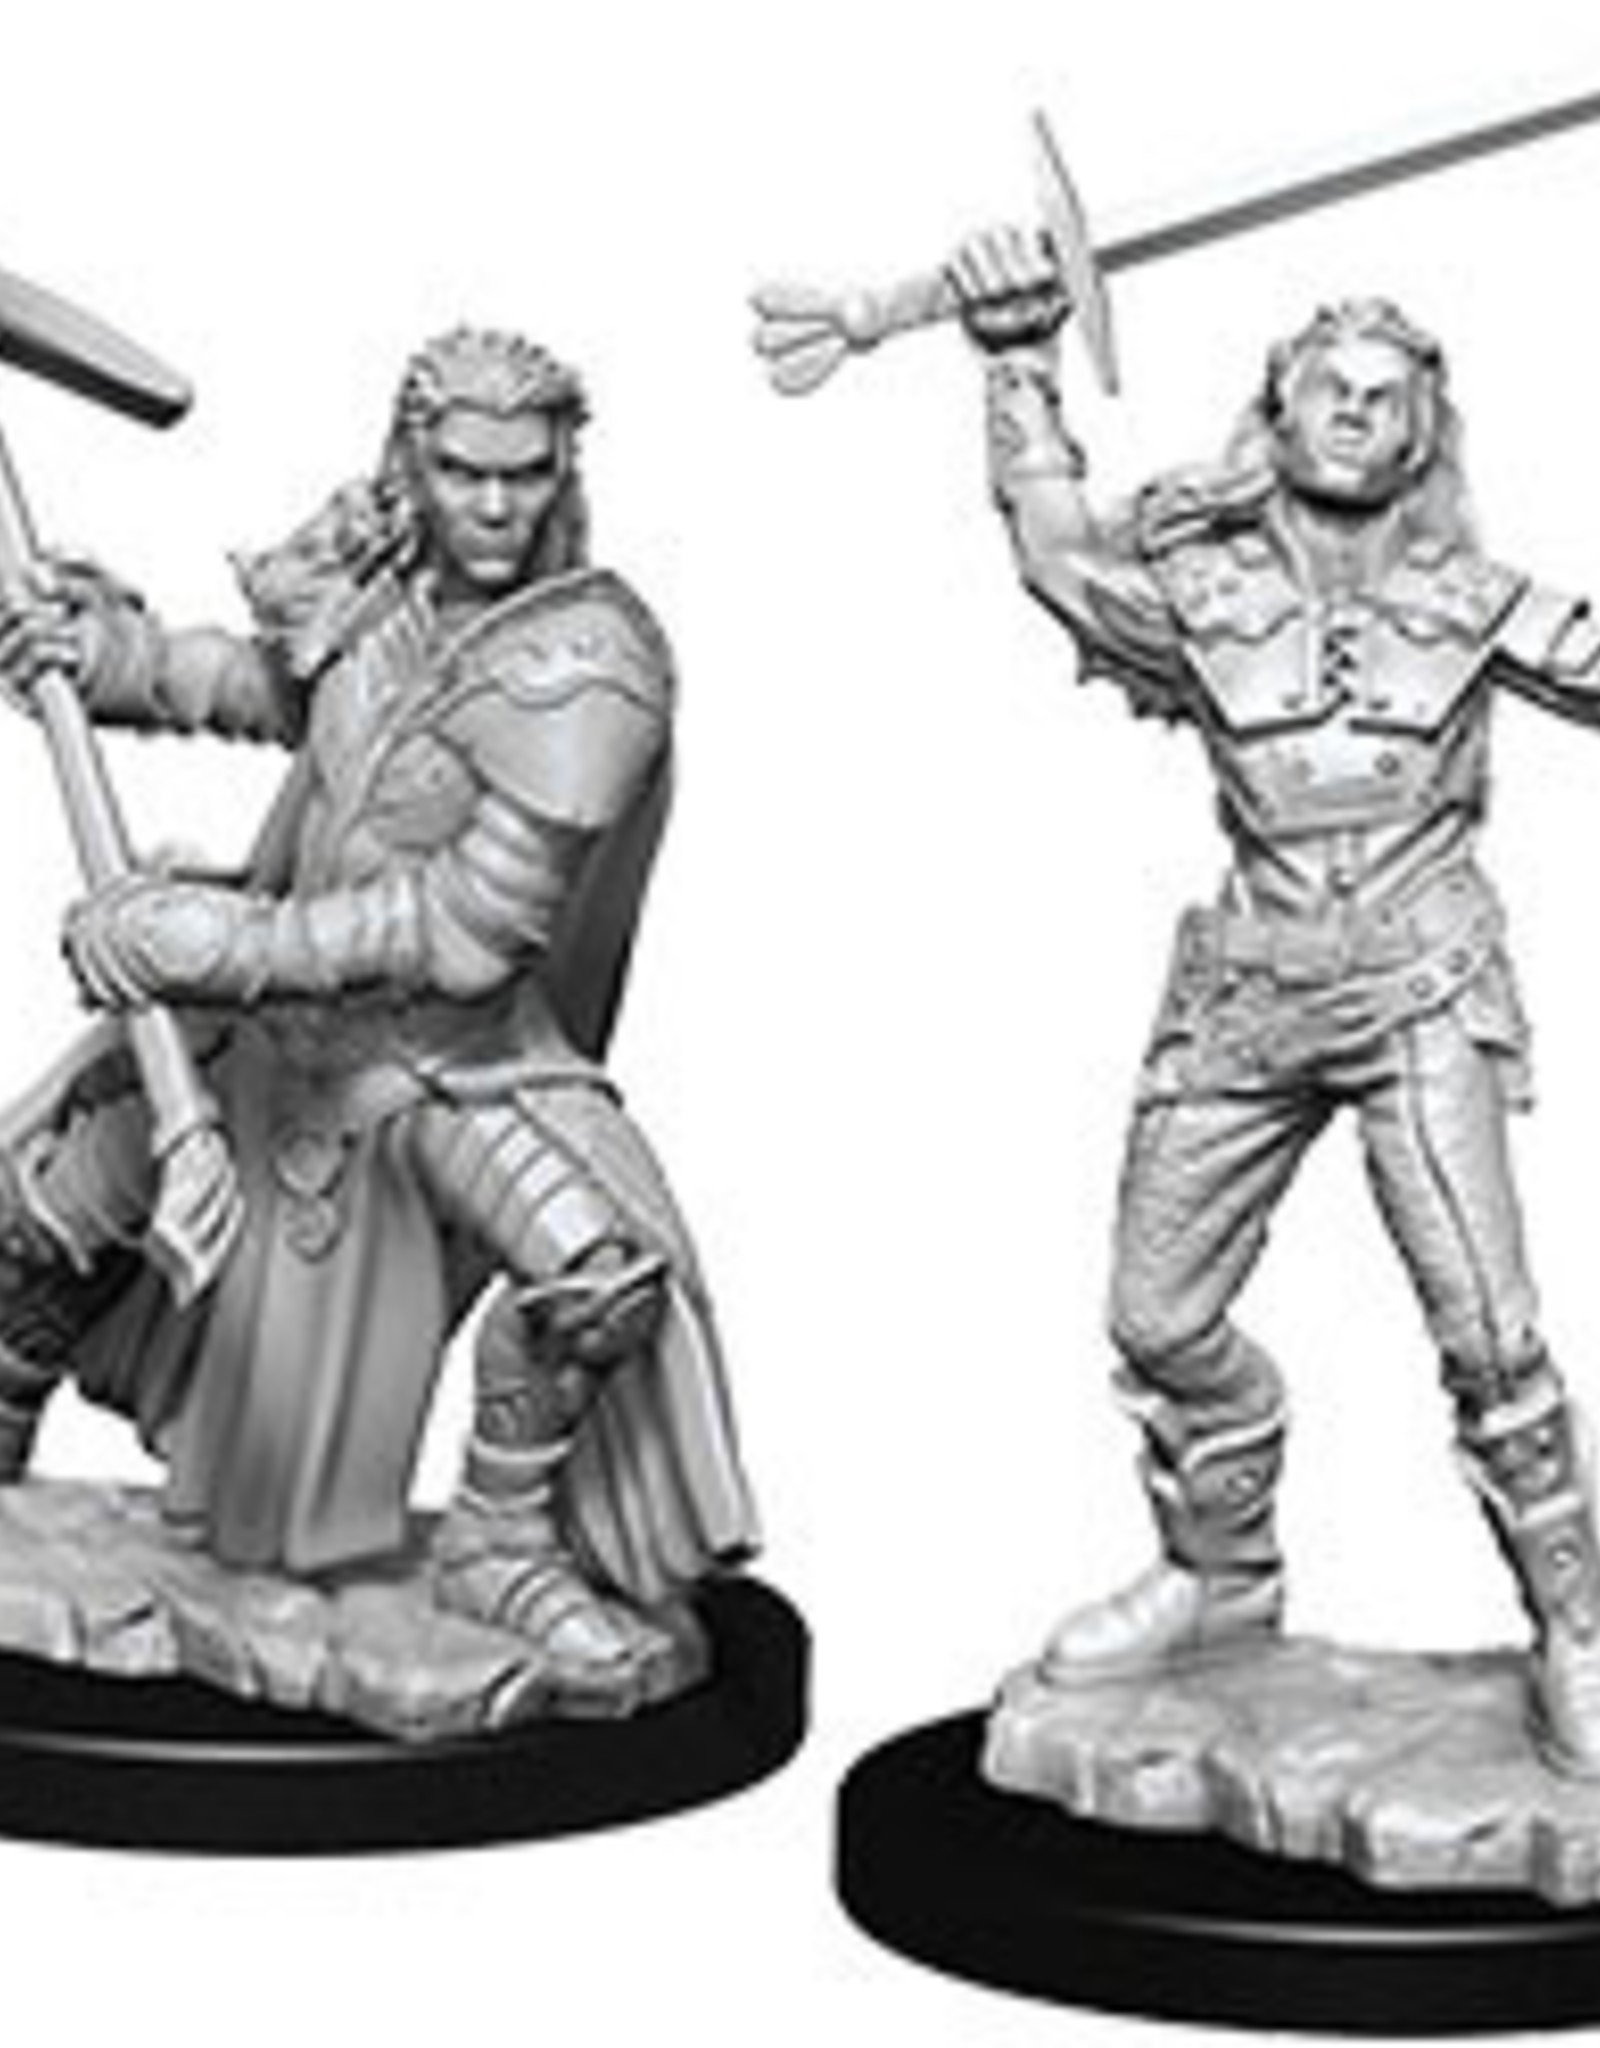 WizKids Dungeons & Dragons Nolzur's Marvelous Miniatures: Female Half-Orc Fighter